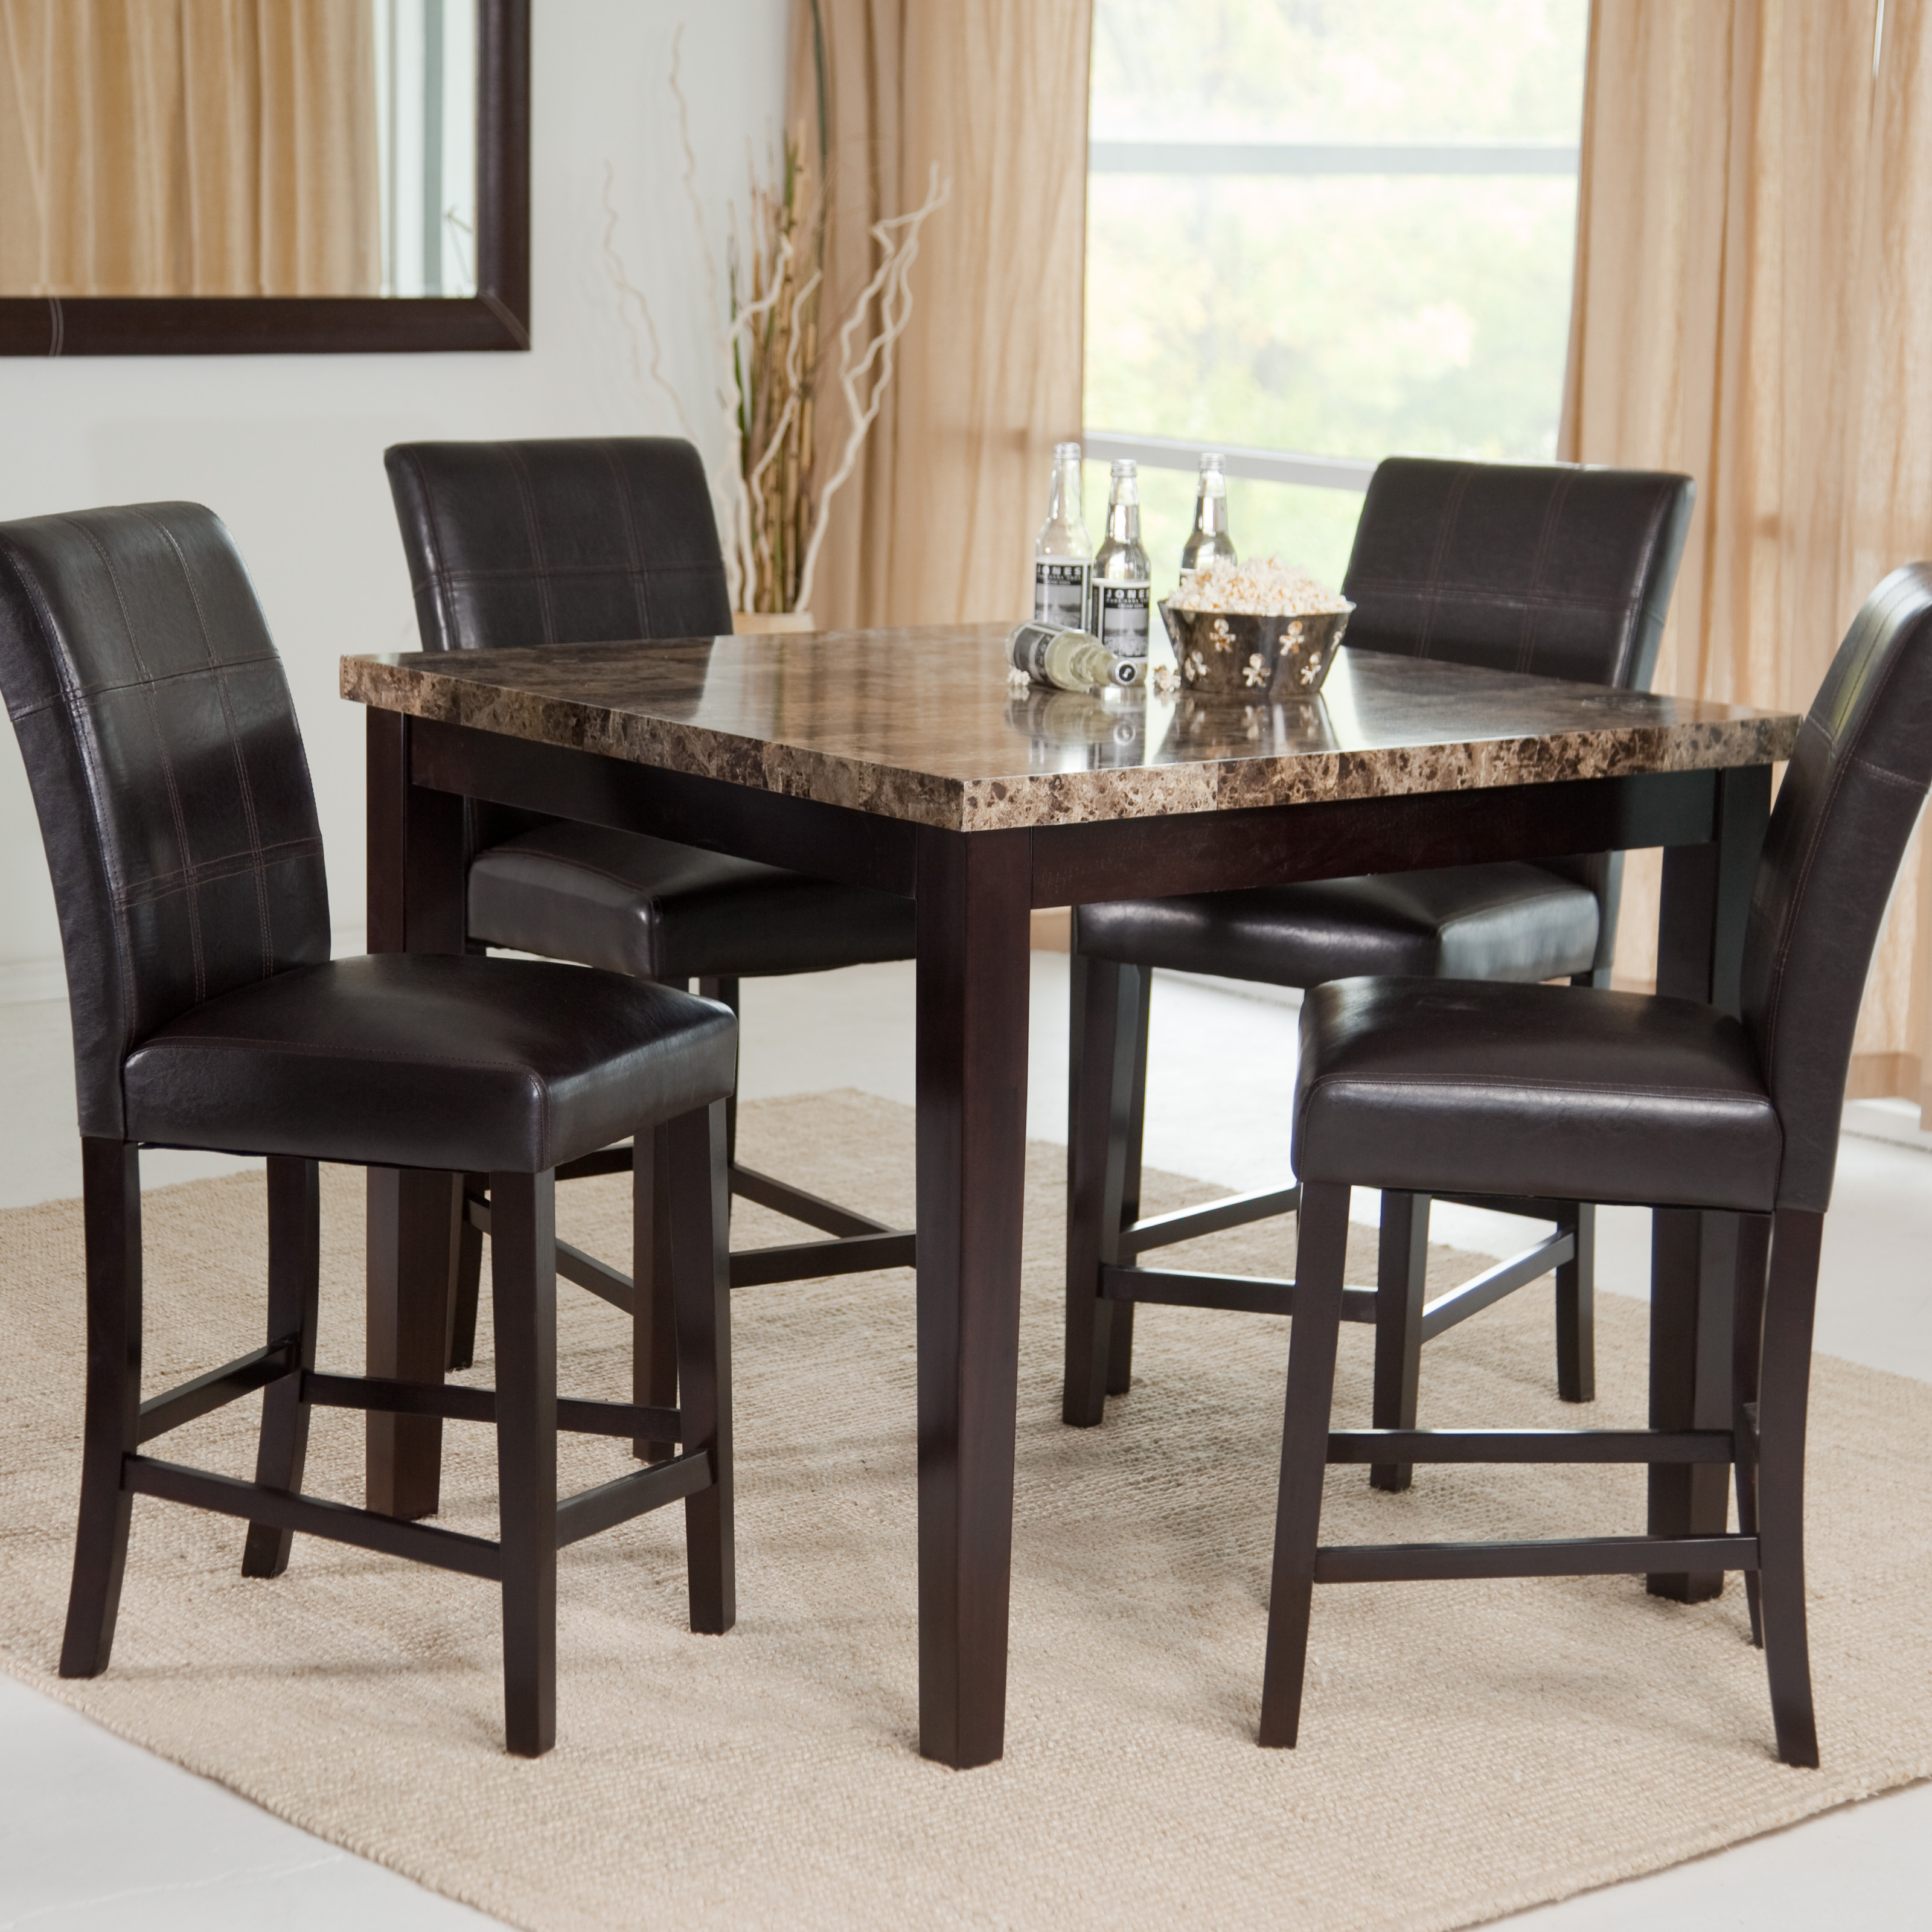 Palazzo 5 piece counter height dining set dining table for High dinner table set